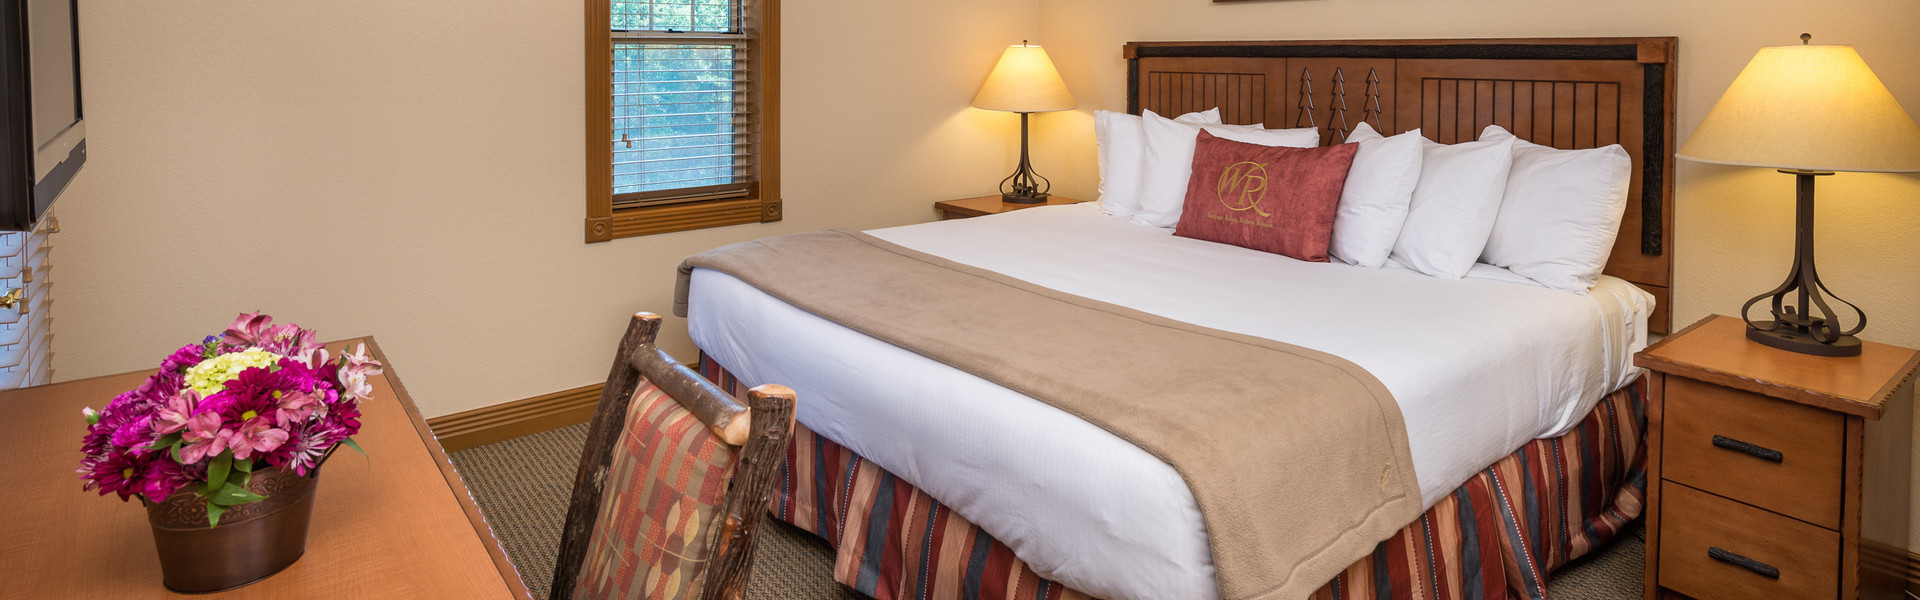 Rooms and Cabins at our Branson Hotel near Roark Valley Road   King Bed Room